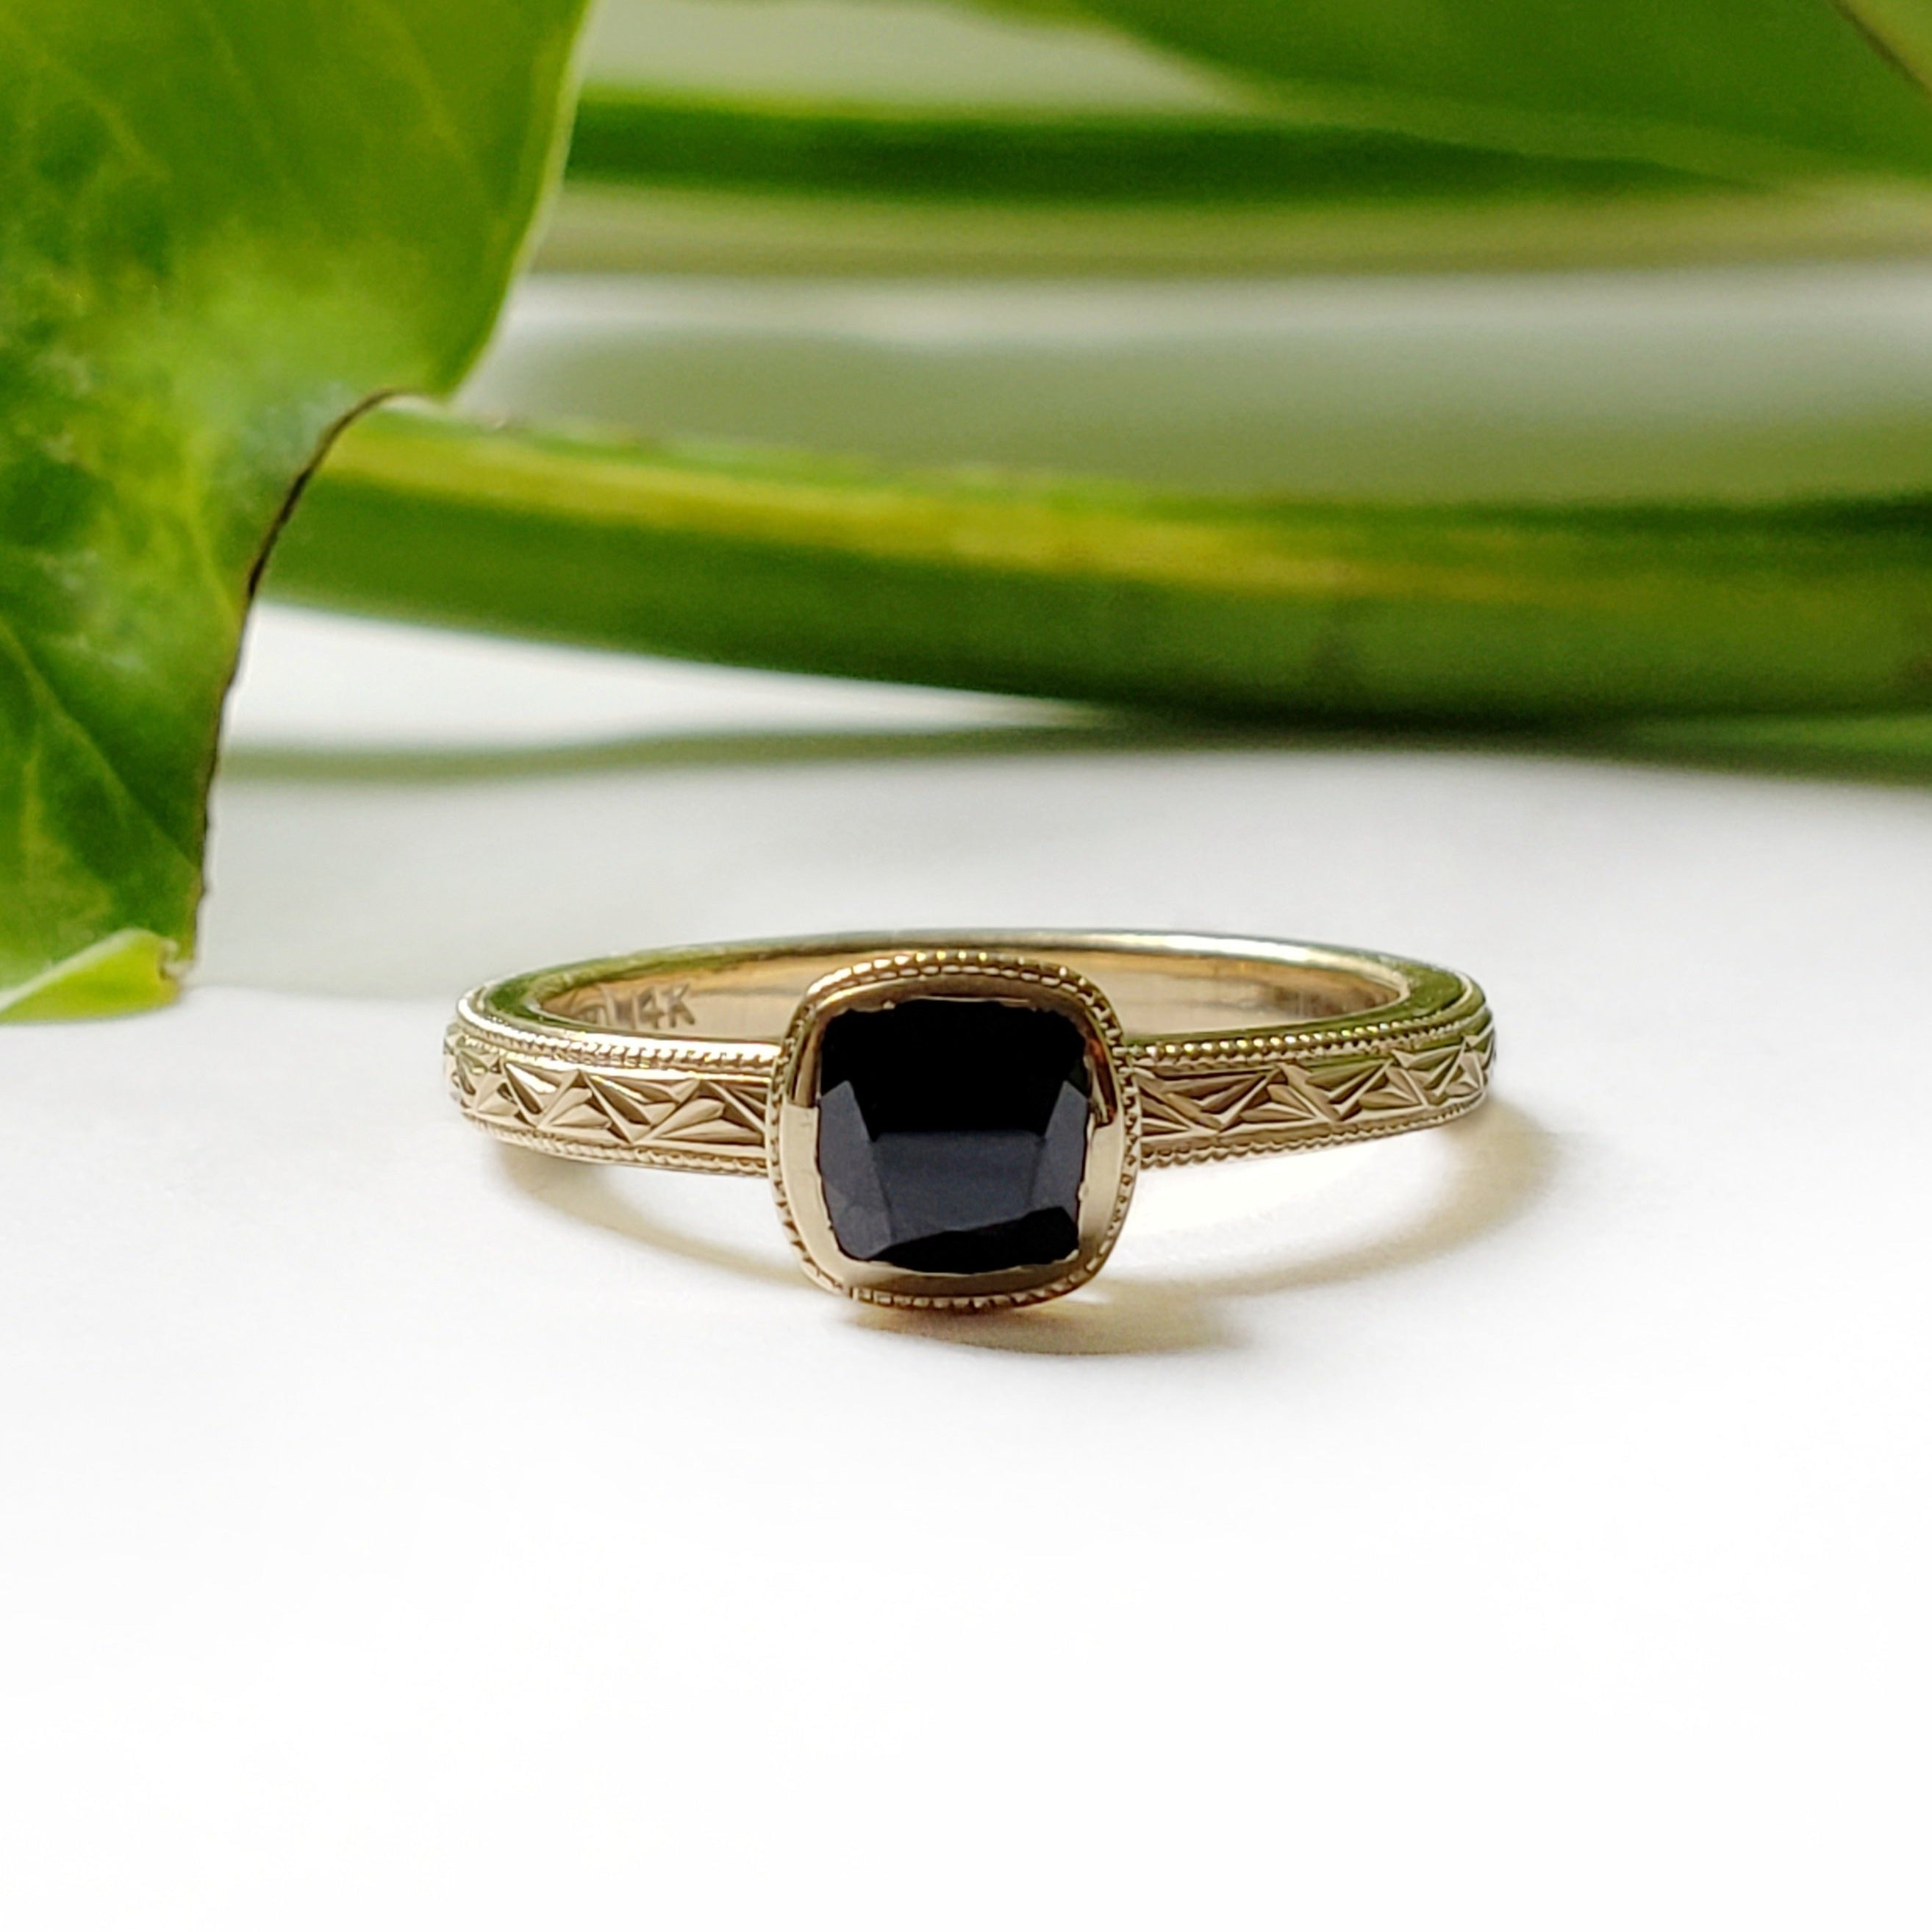 14kt yellow gold unique cushion cut black spinel bezel set engagement ring fan hand engraving era design